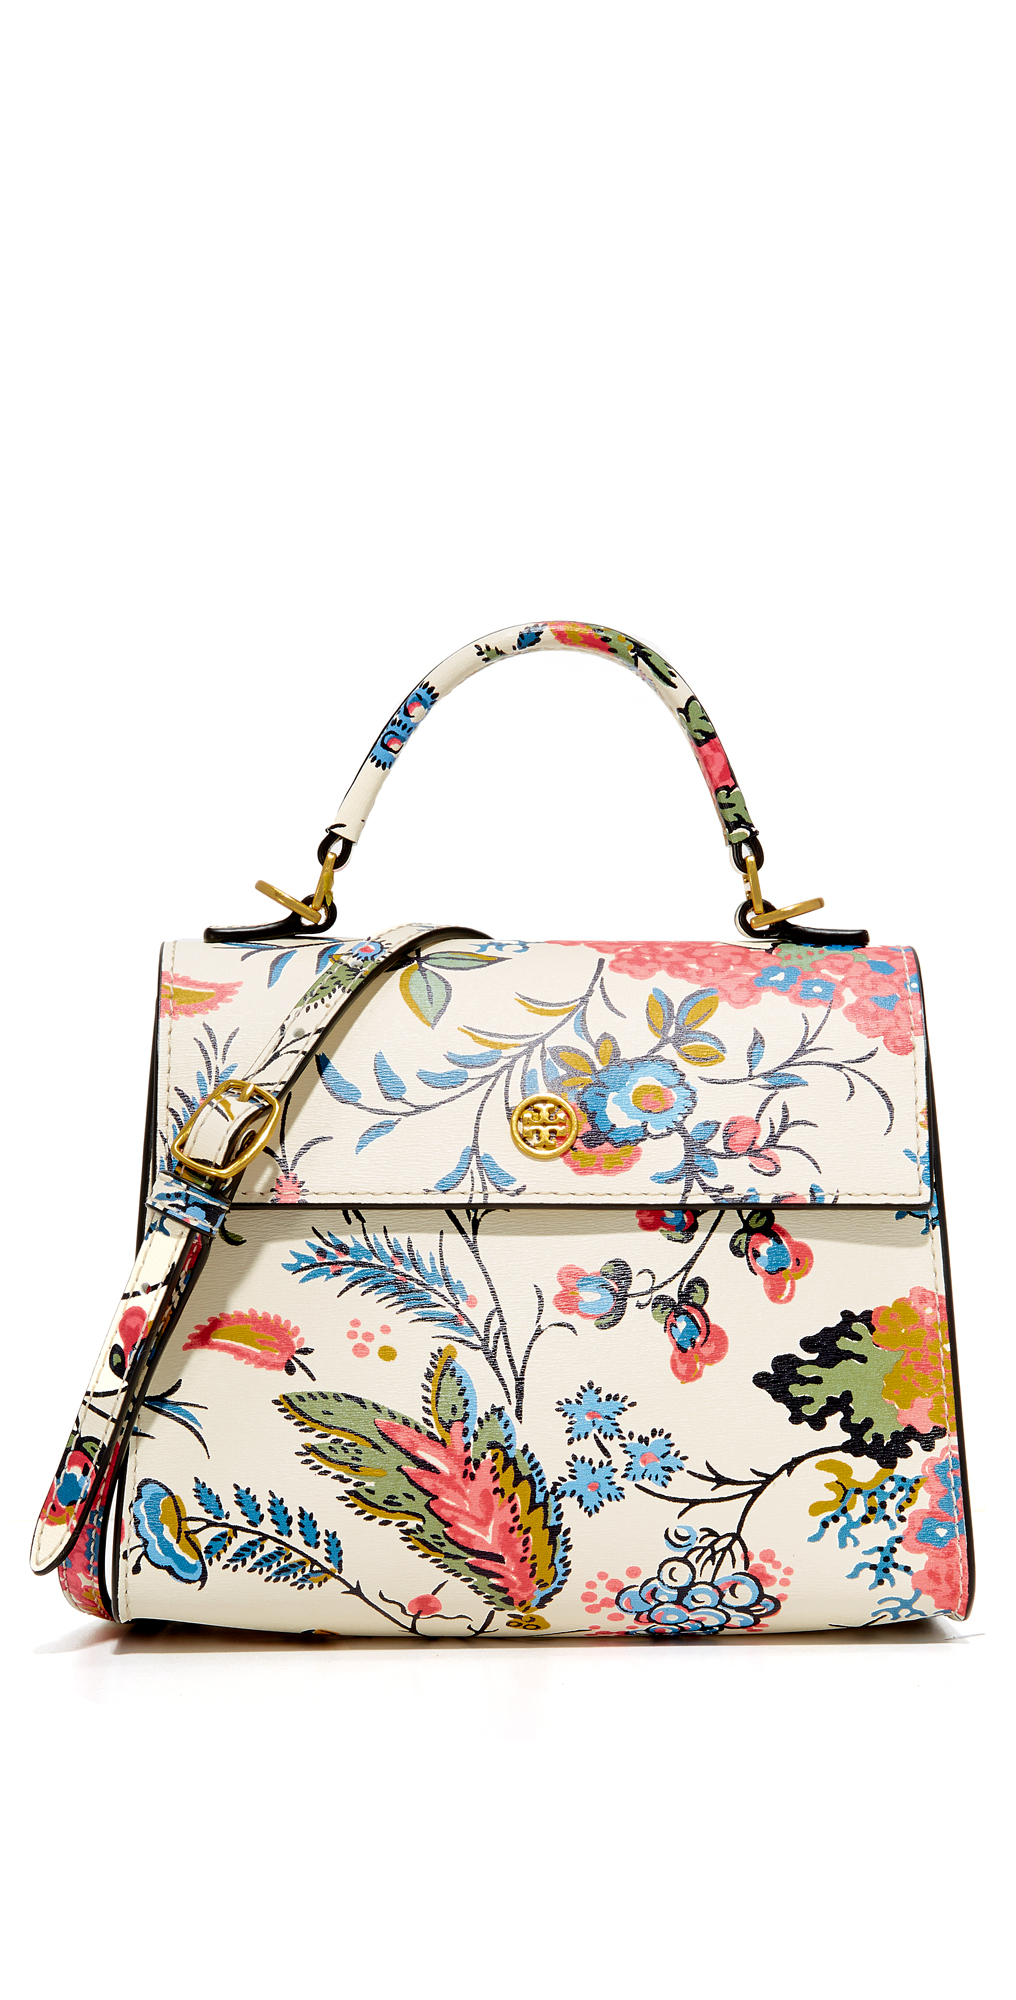 Floral Parker Small Satchel Tory Burch